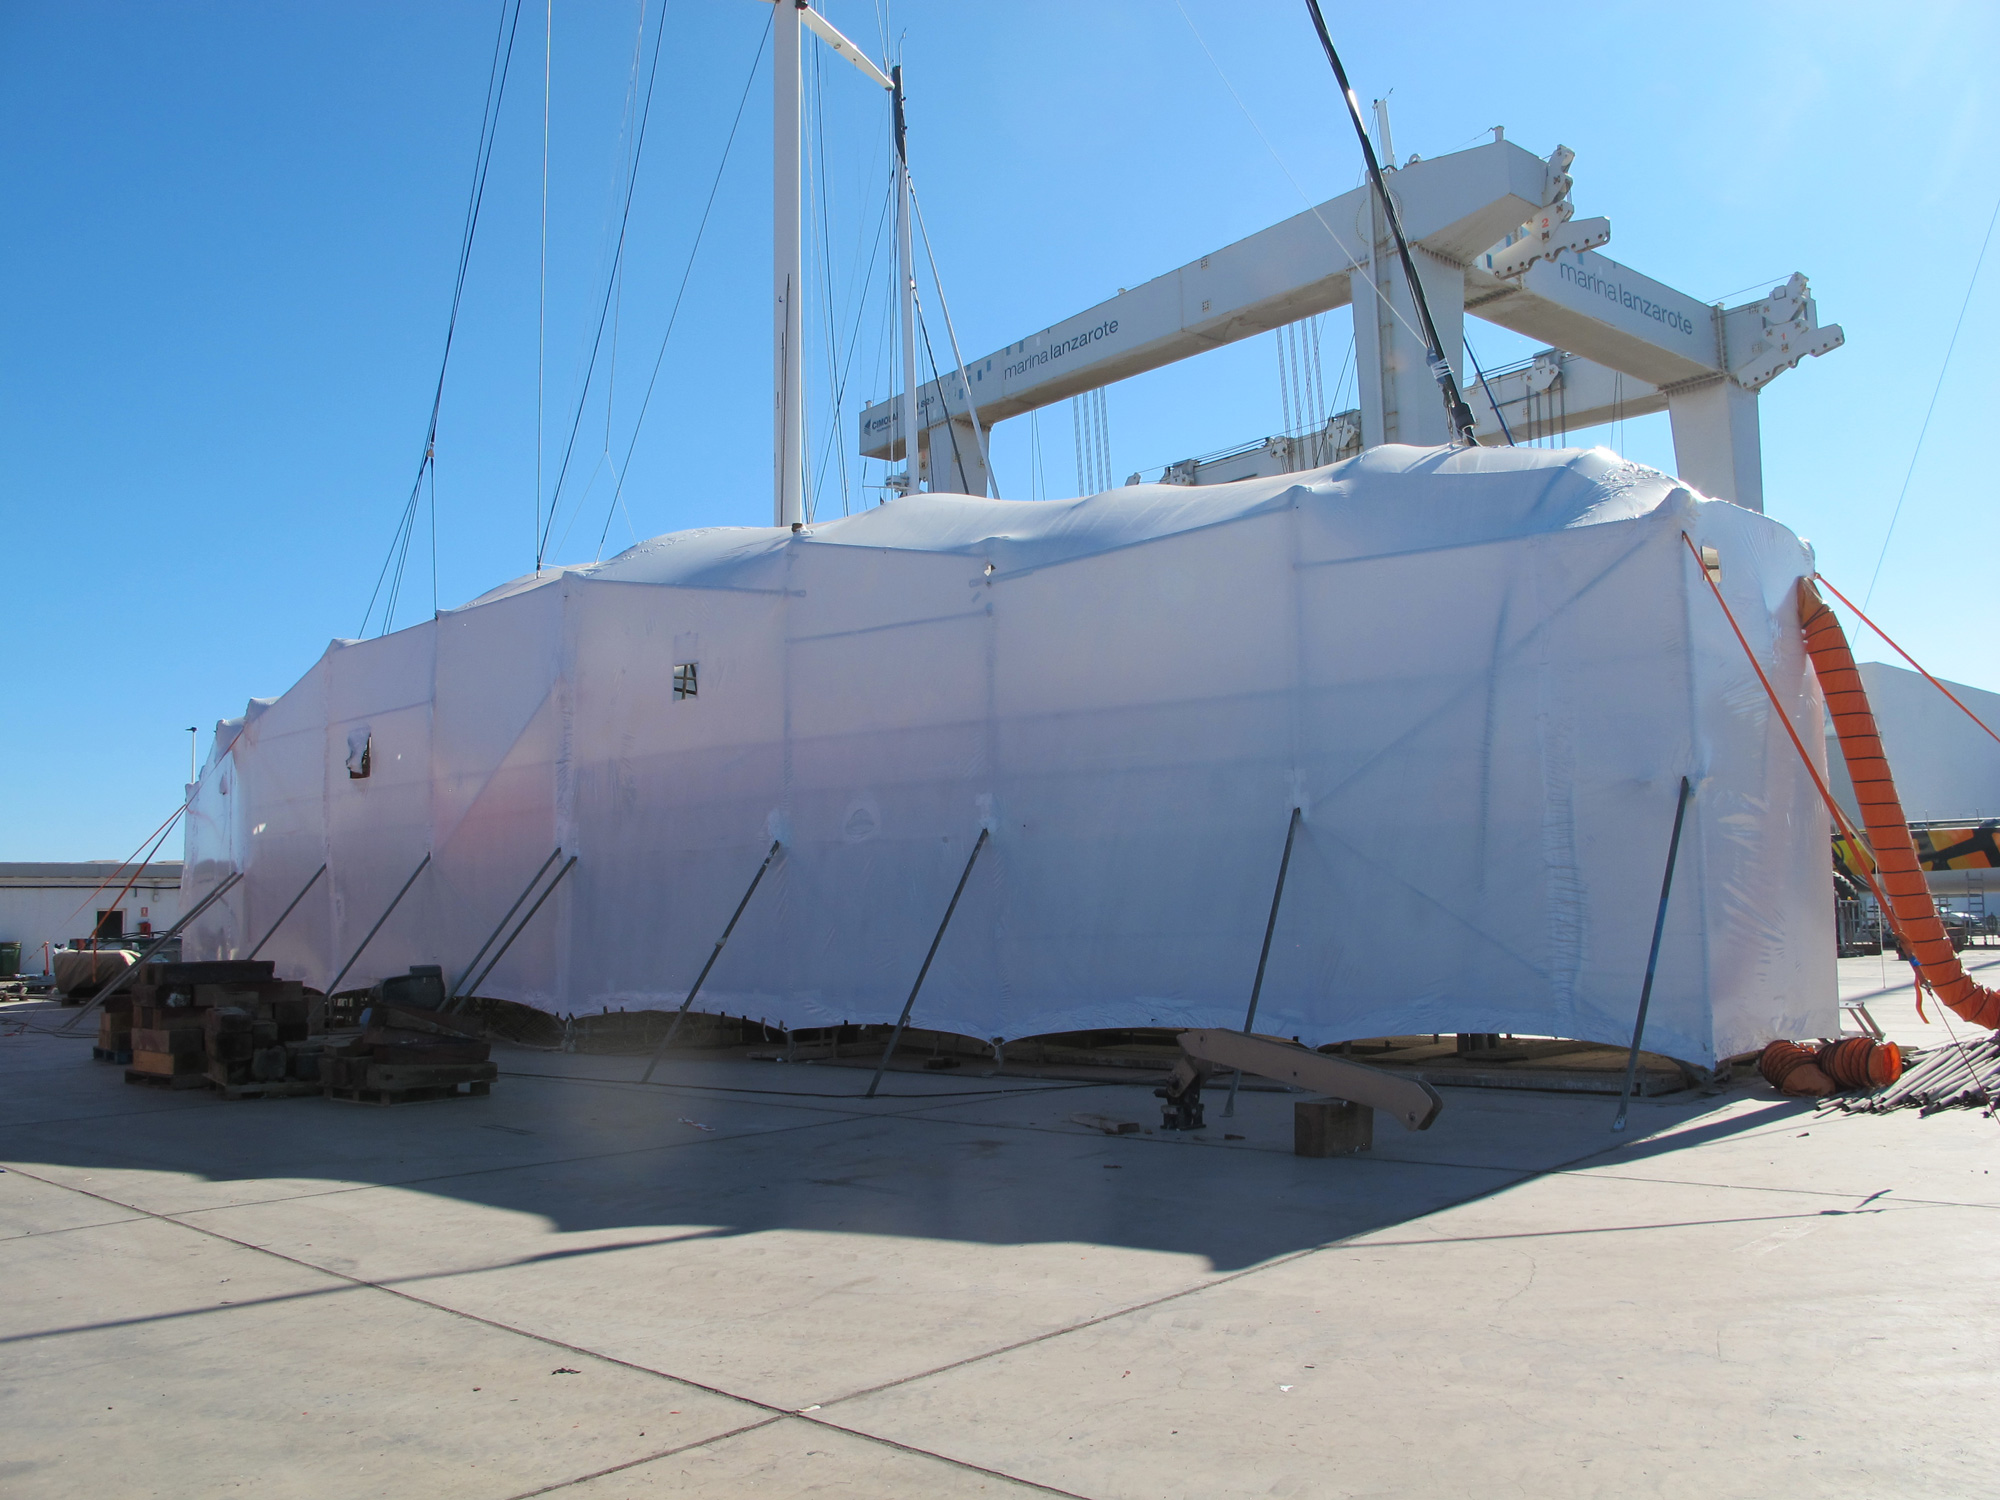 Large yacht covered in white wrapping.